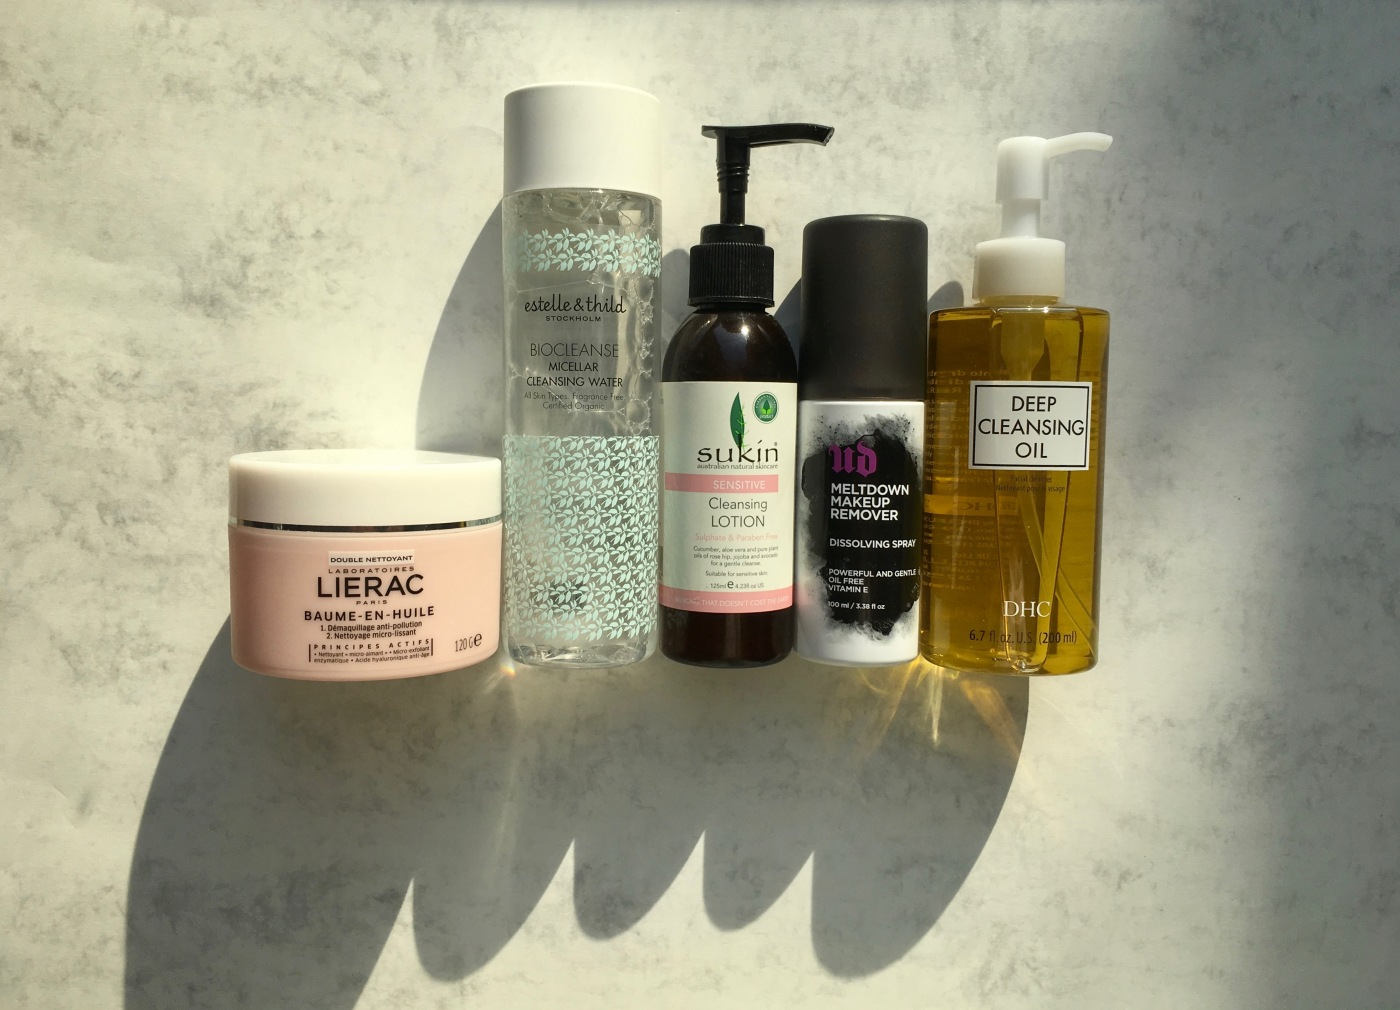 cleanser sukin cleansing lotion DHC cleansing oil estelle & thild lierac urban decay